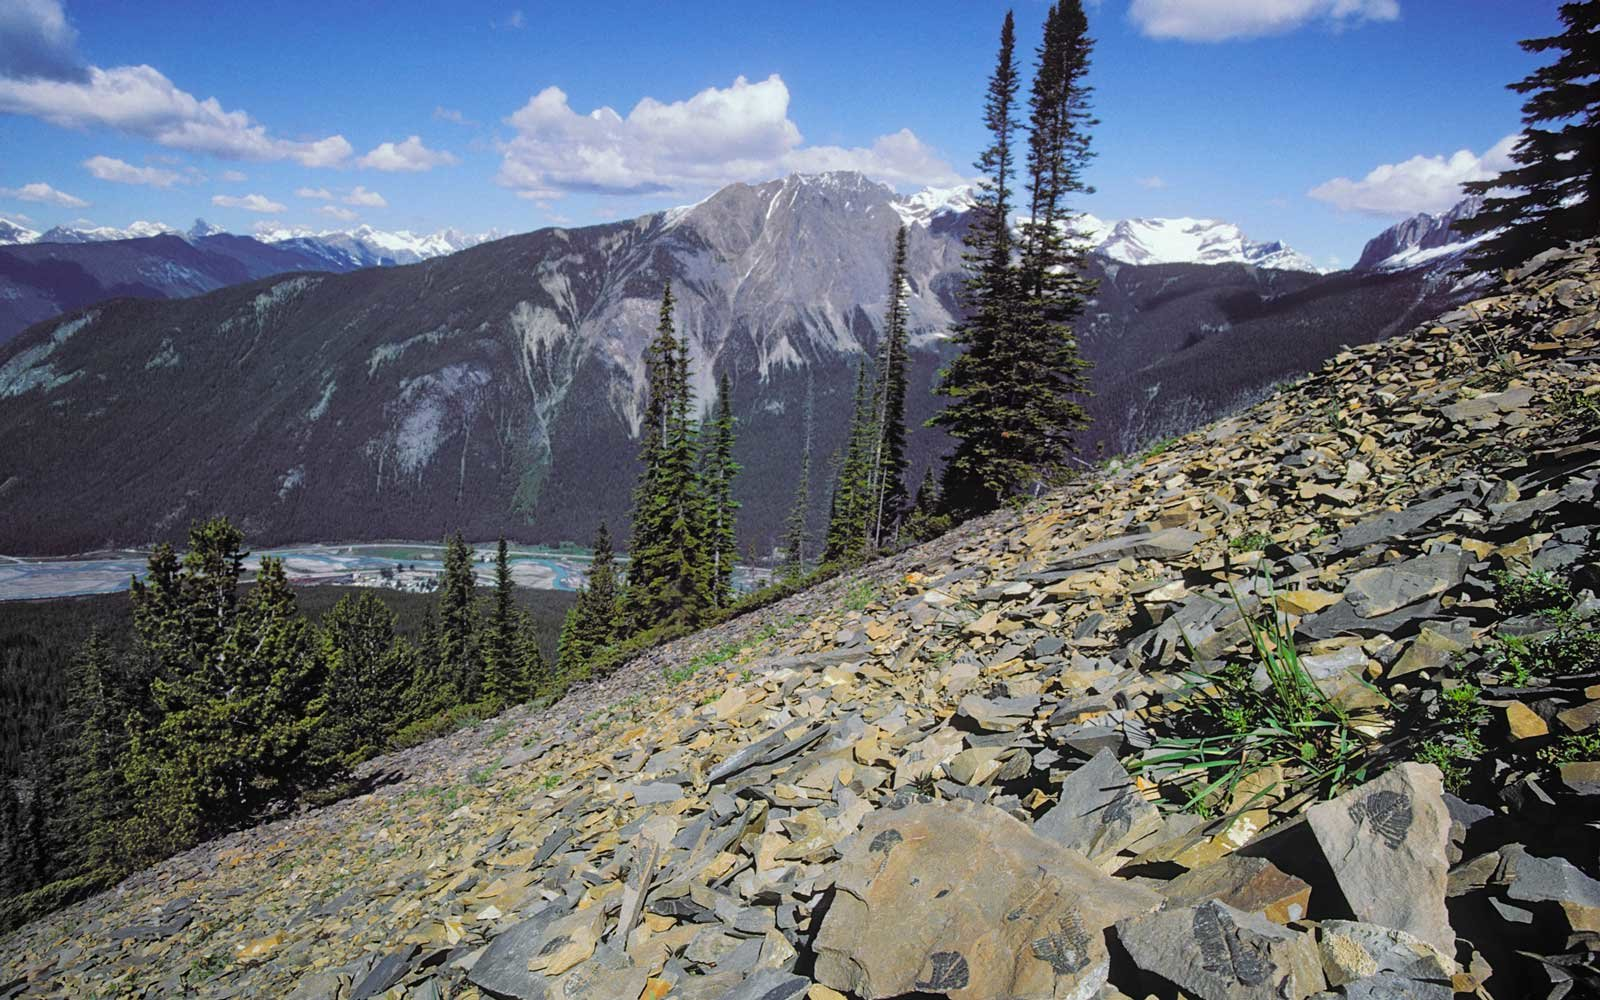 Excavating History in British Columbia